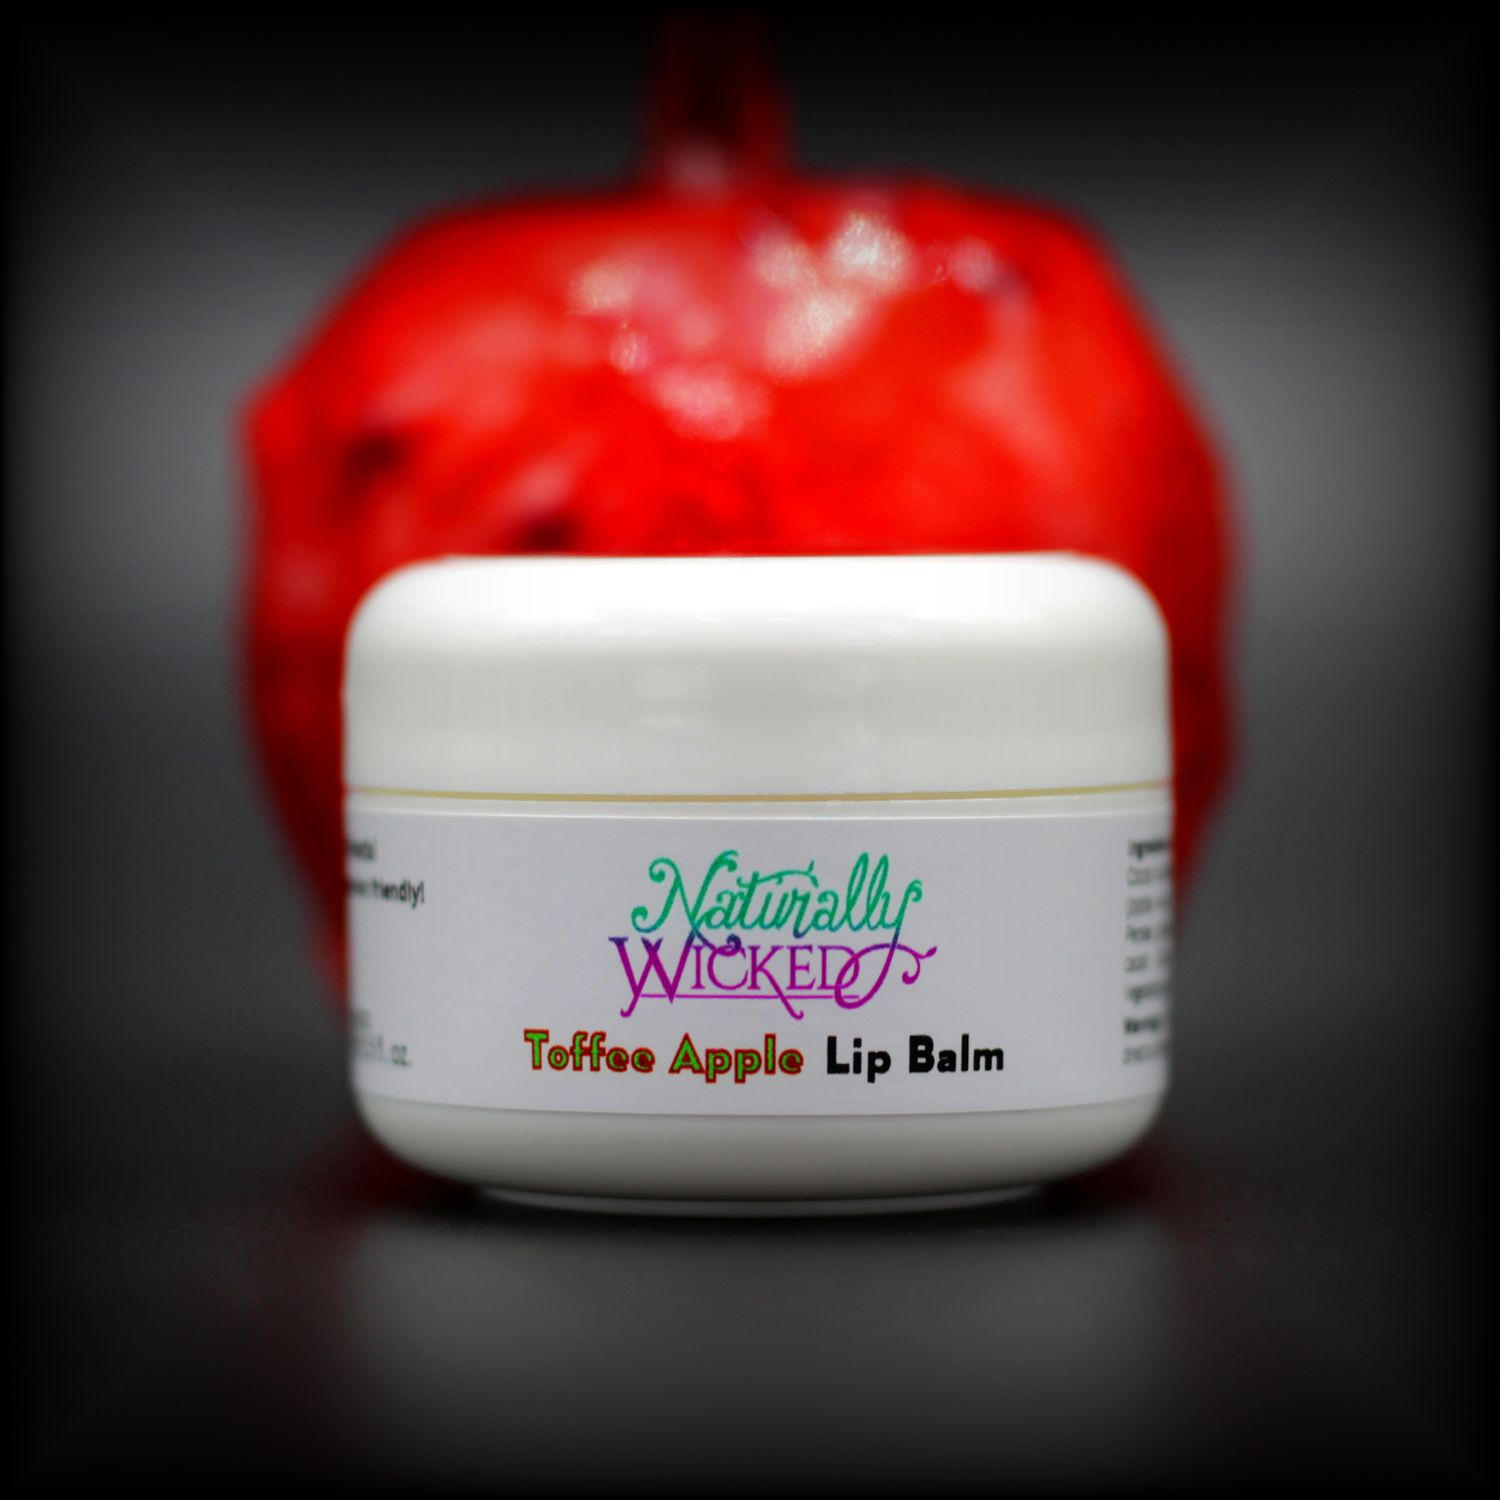 Naturally Wicked Toffee Apple Lip Balm With Bright Red Toffee Apple Behind